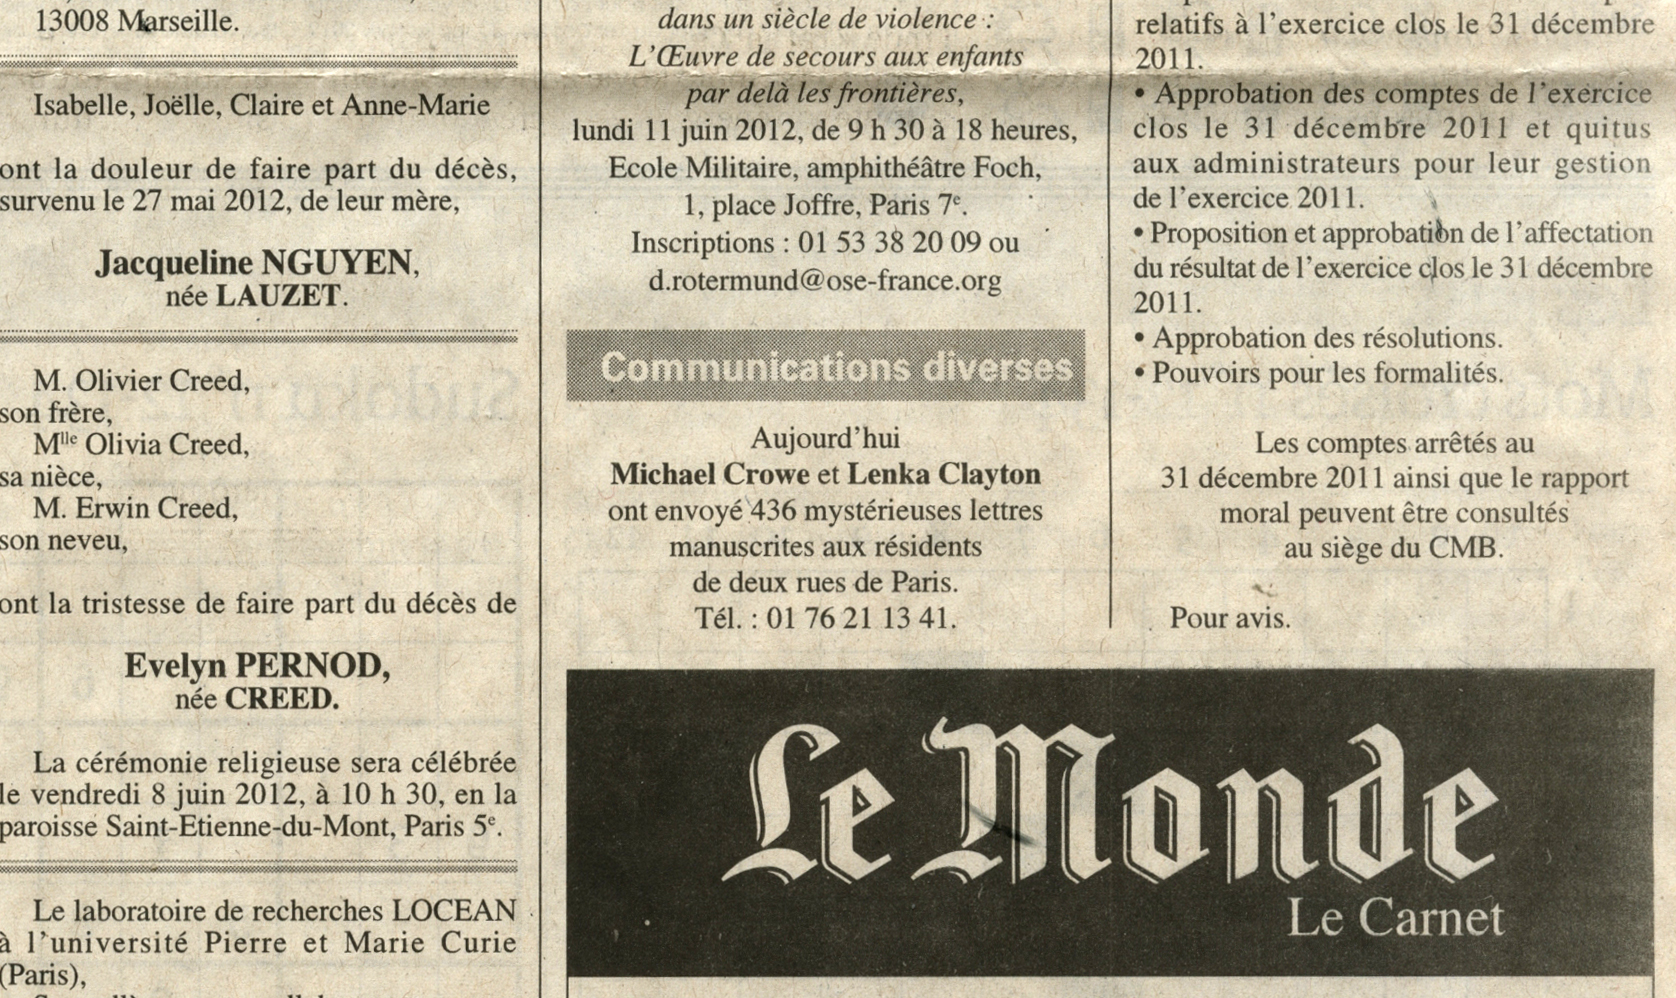 2012 / announcement in Le Monde, the day the letters arrived